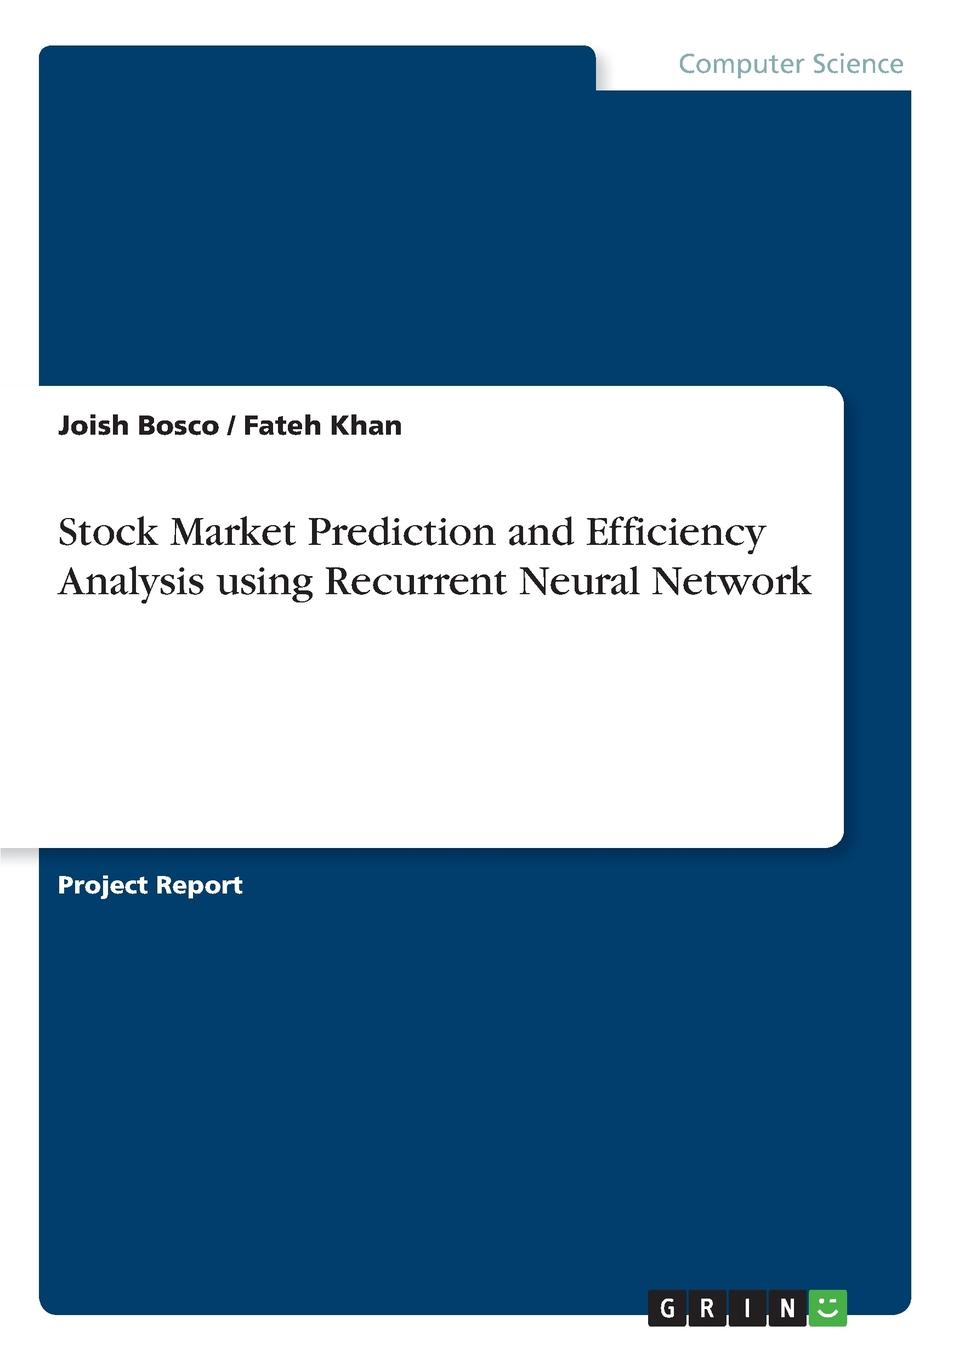 Joish Bosco, Fateh Khan Stock Market Prediction and Efficiency Analysis using Recurrent Neural Network sean c keenan financial institution advantage and the optimization of information processing